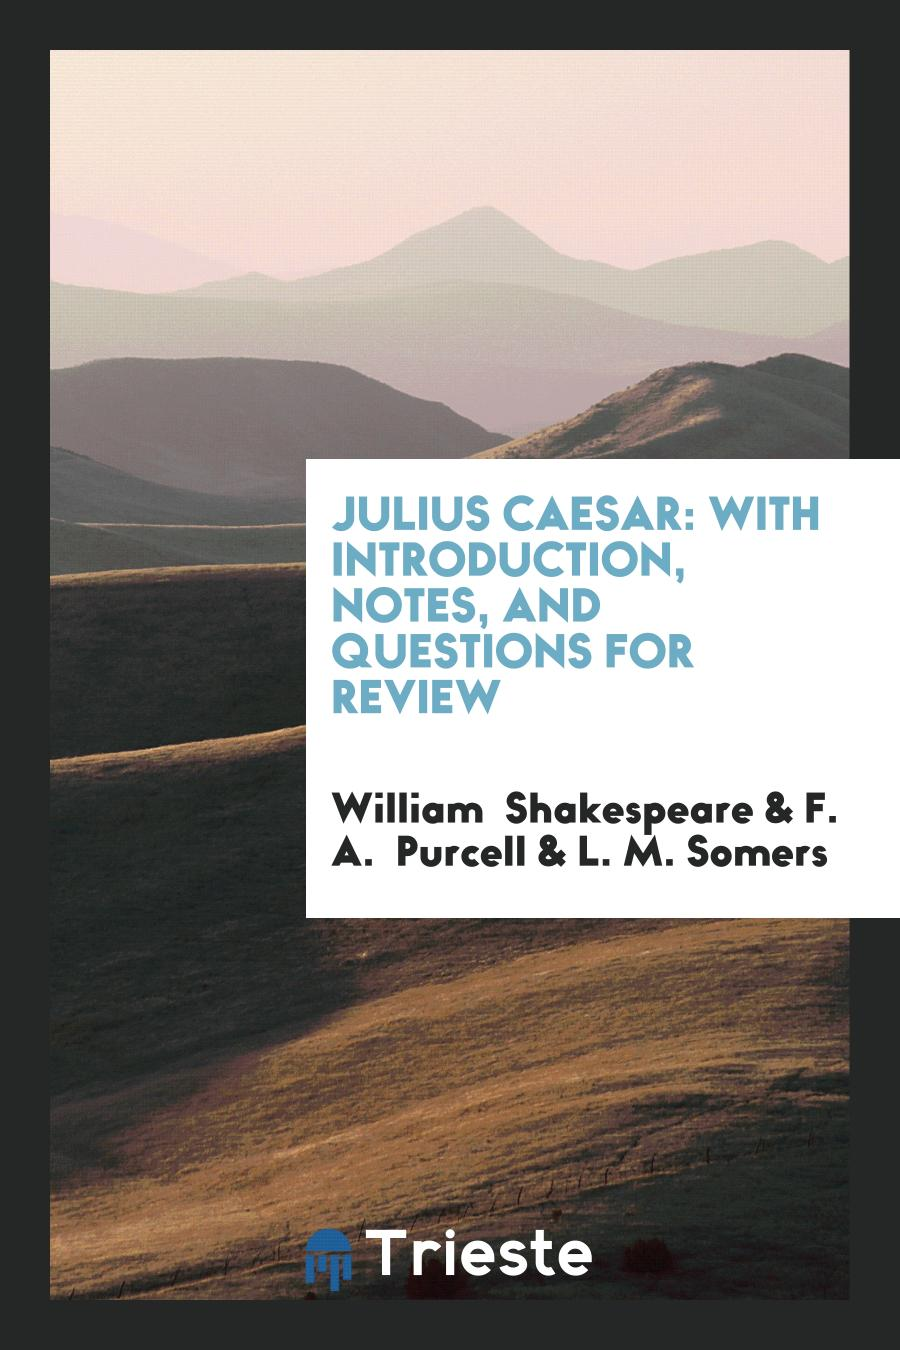 Julius Caesar: With Introduction, Notes, and Questions for Review